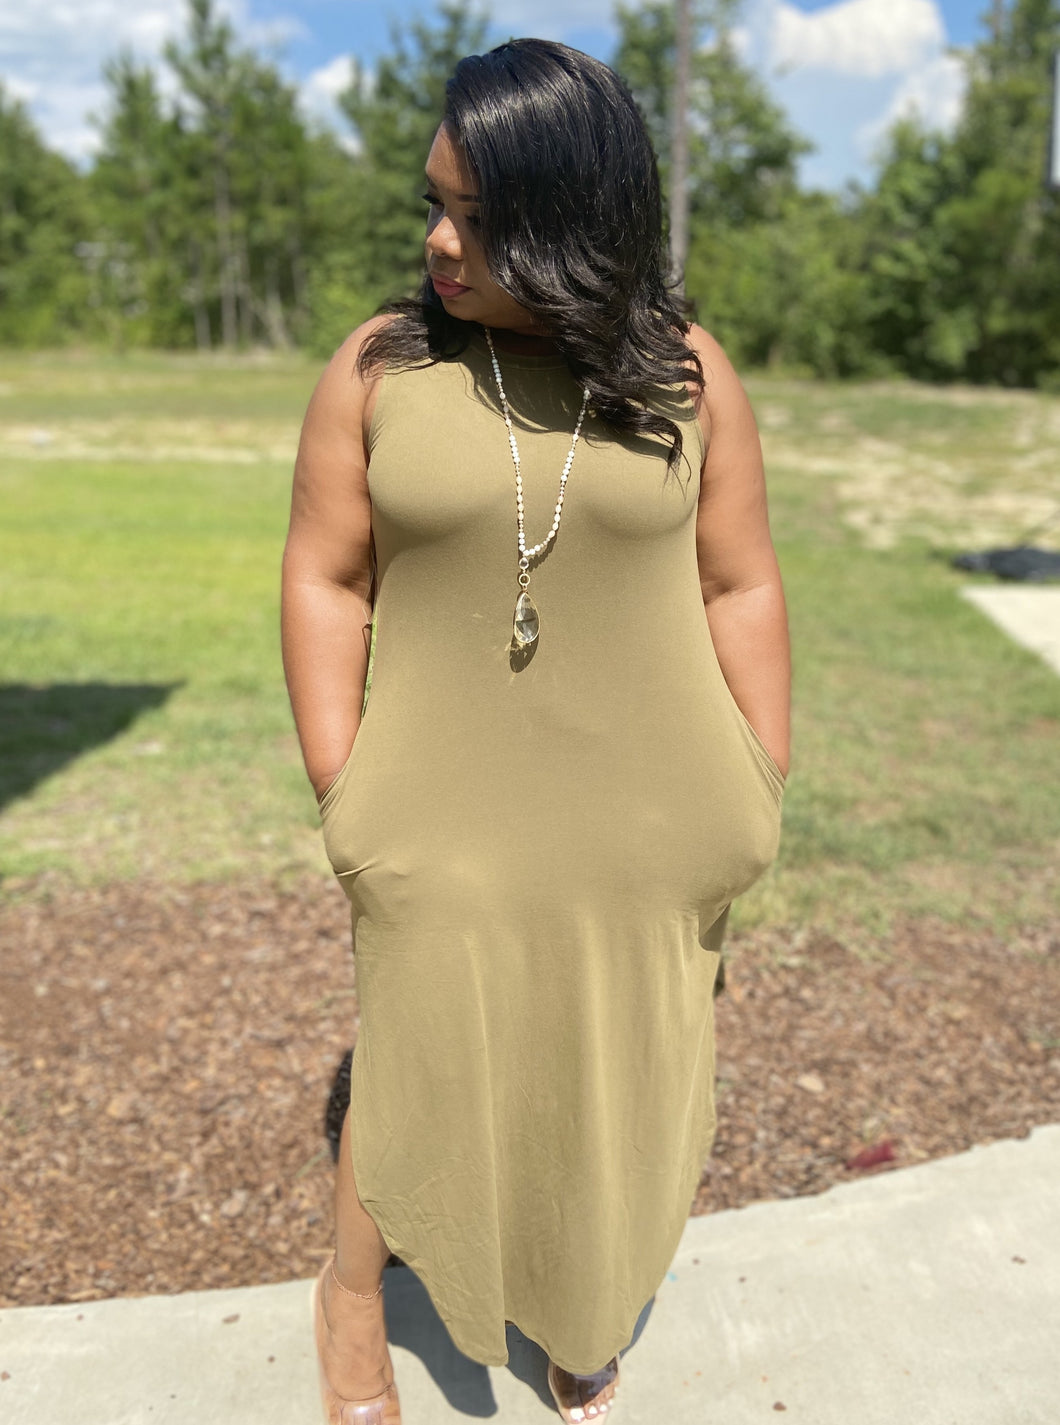 The Comfy Maxi Dress